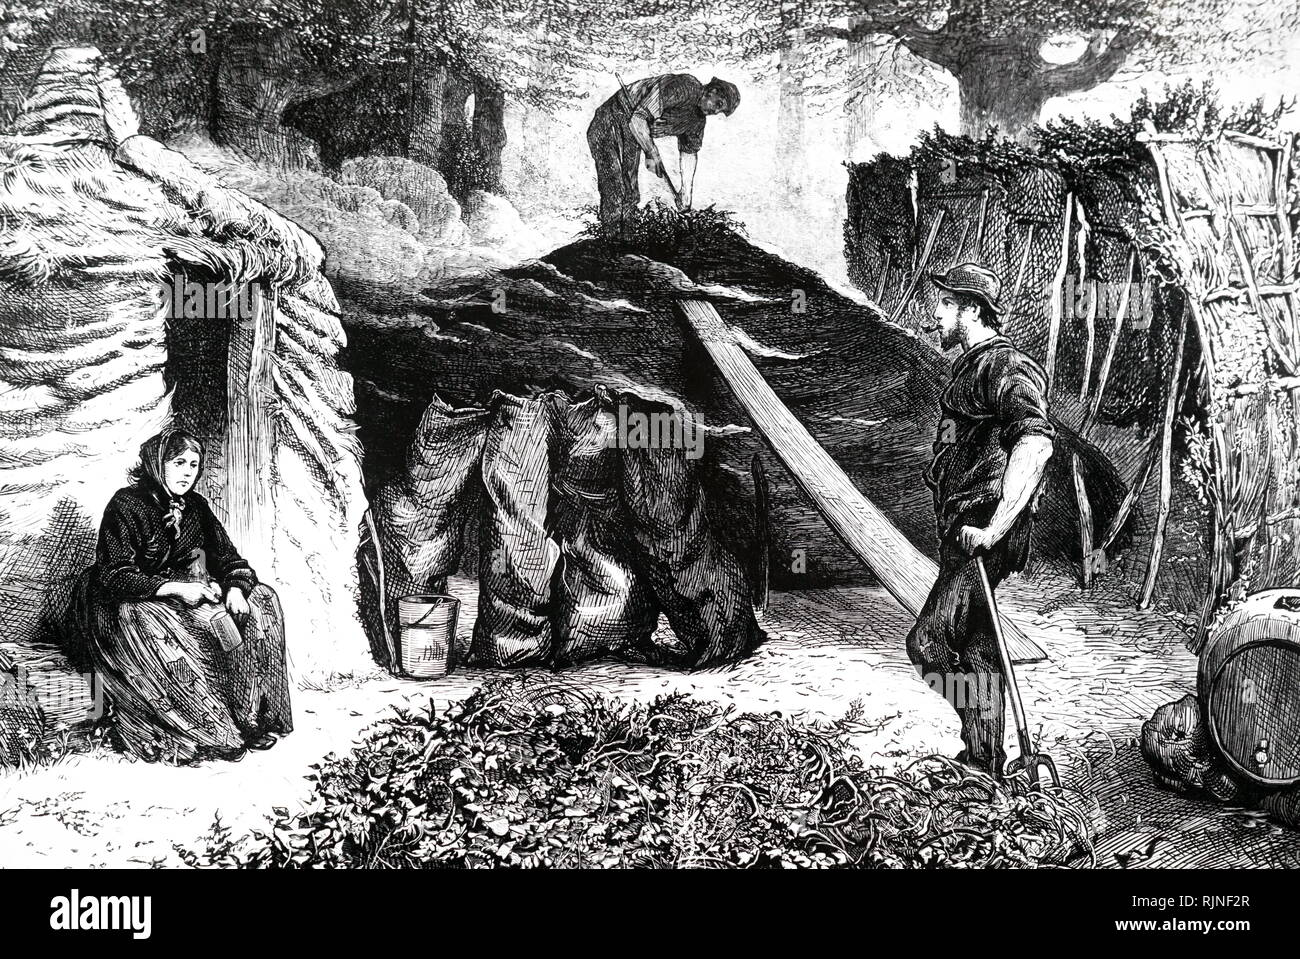 An engraving depicting charcoal burners in Epping Forest. They spent the summer in huts in the forest to be on hand to attend the fires whenever necessary. - Stock Image